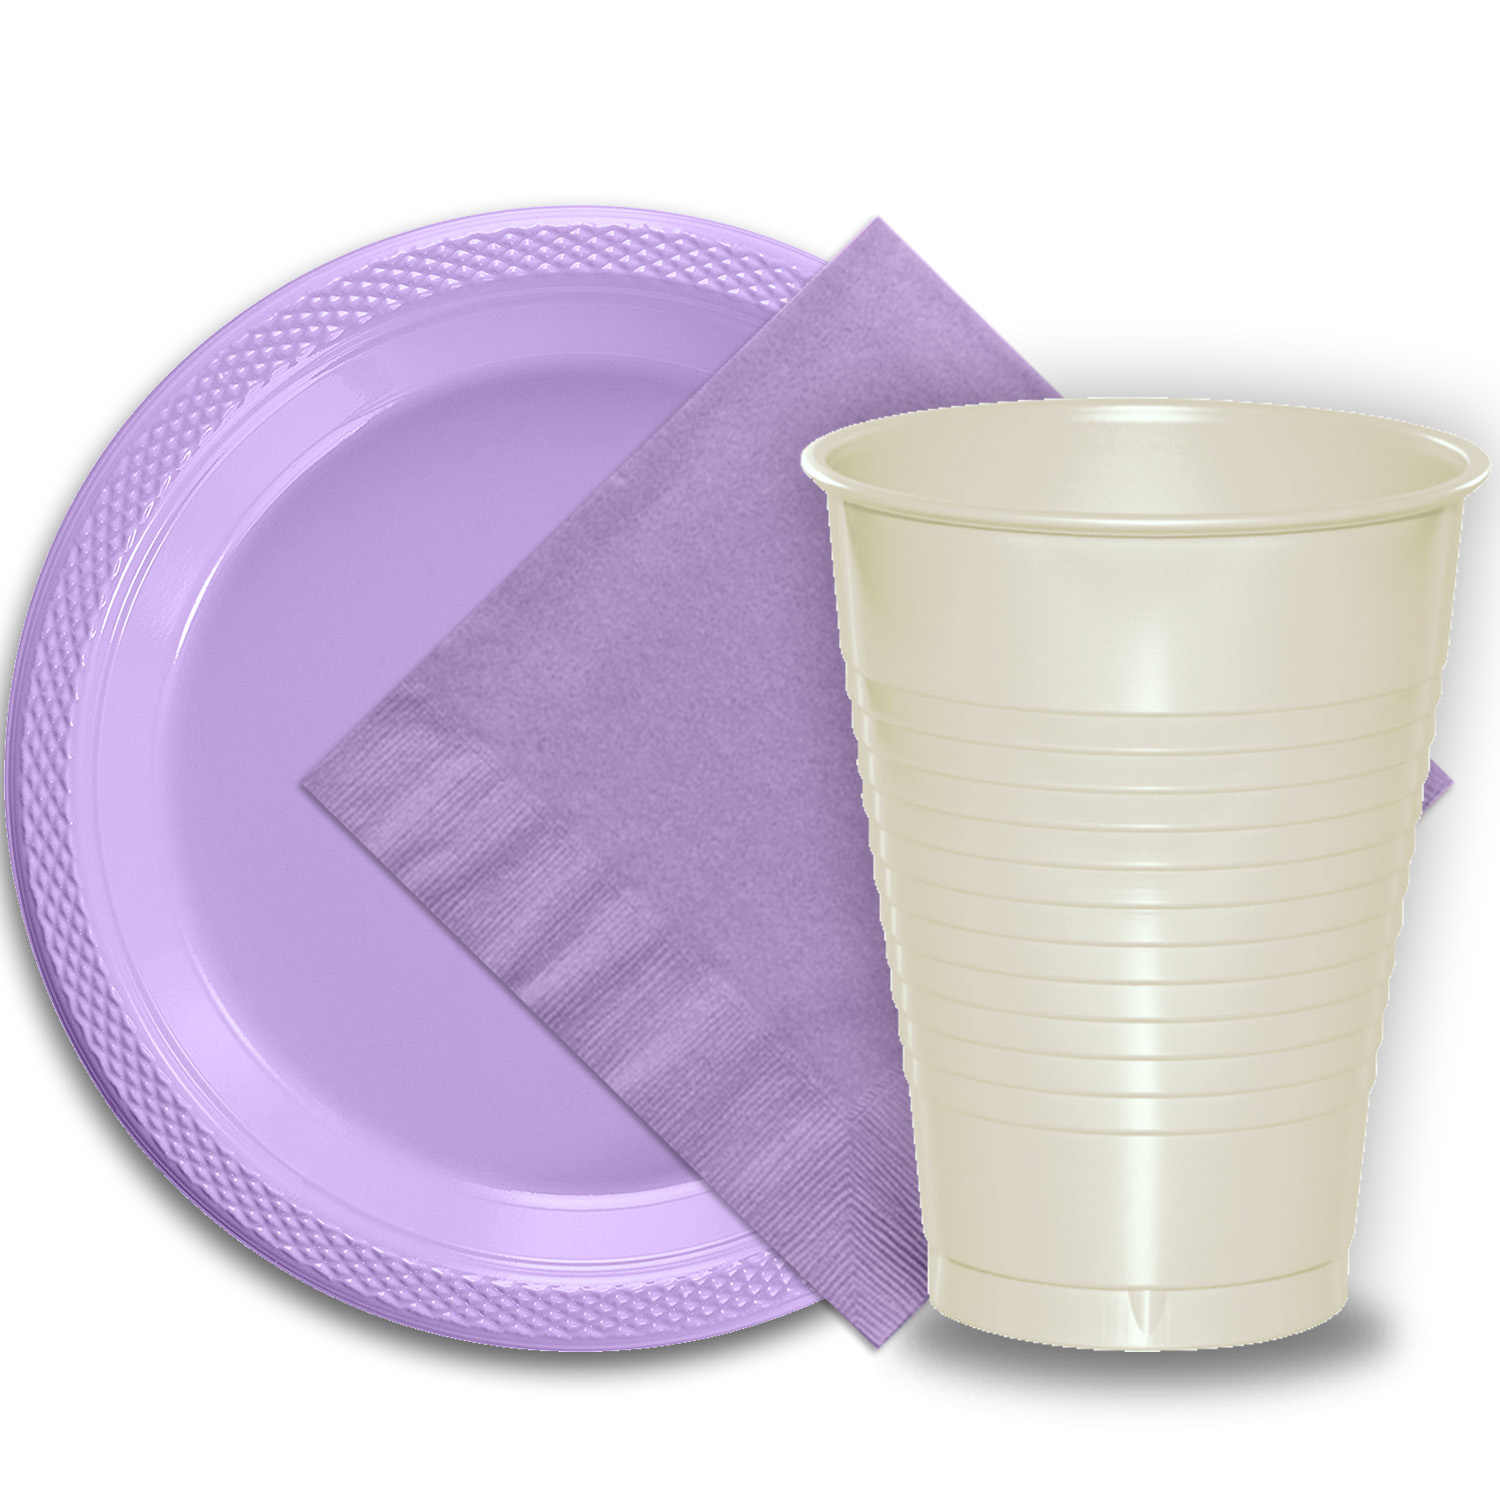 """50 Lavender Plastic Plates (9""""), 50 Ivory Plastic Cups (12 oz.), and 50 Lavender Paper Napkins, Dazzelling Colored Disposable Party Supplies Tableware Set for Fifty Guests."""